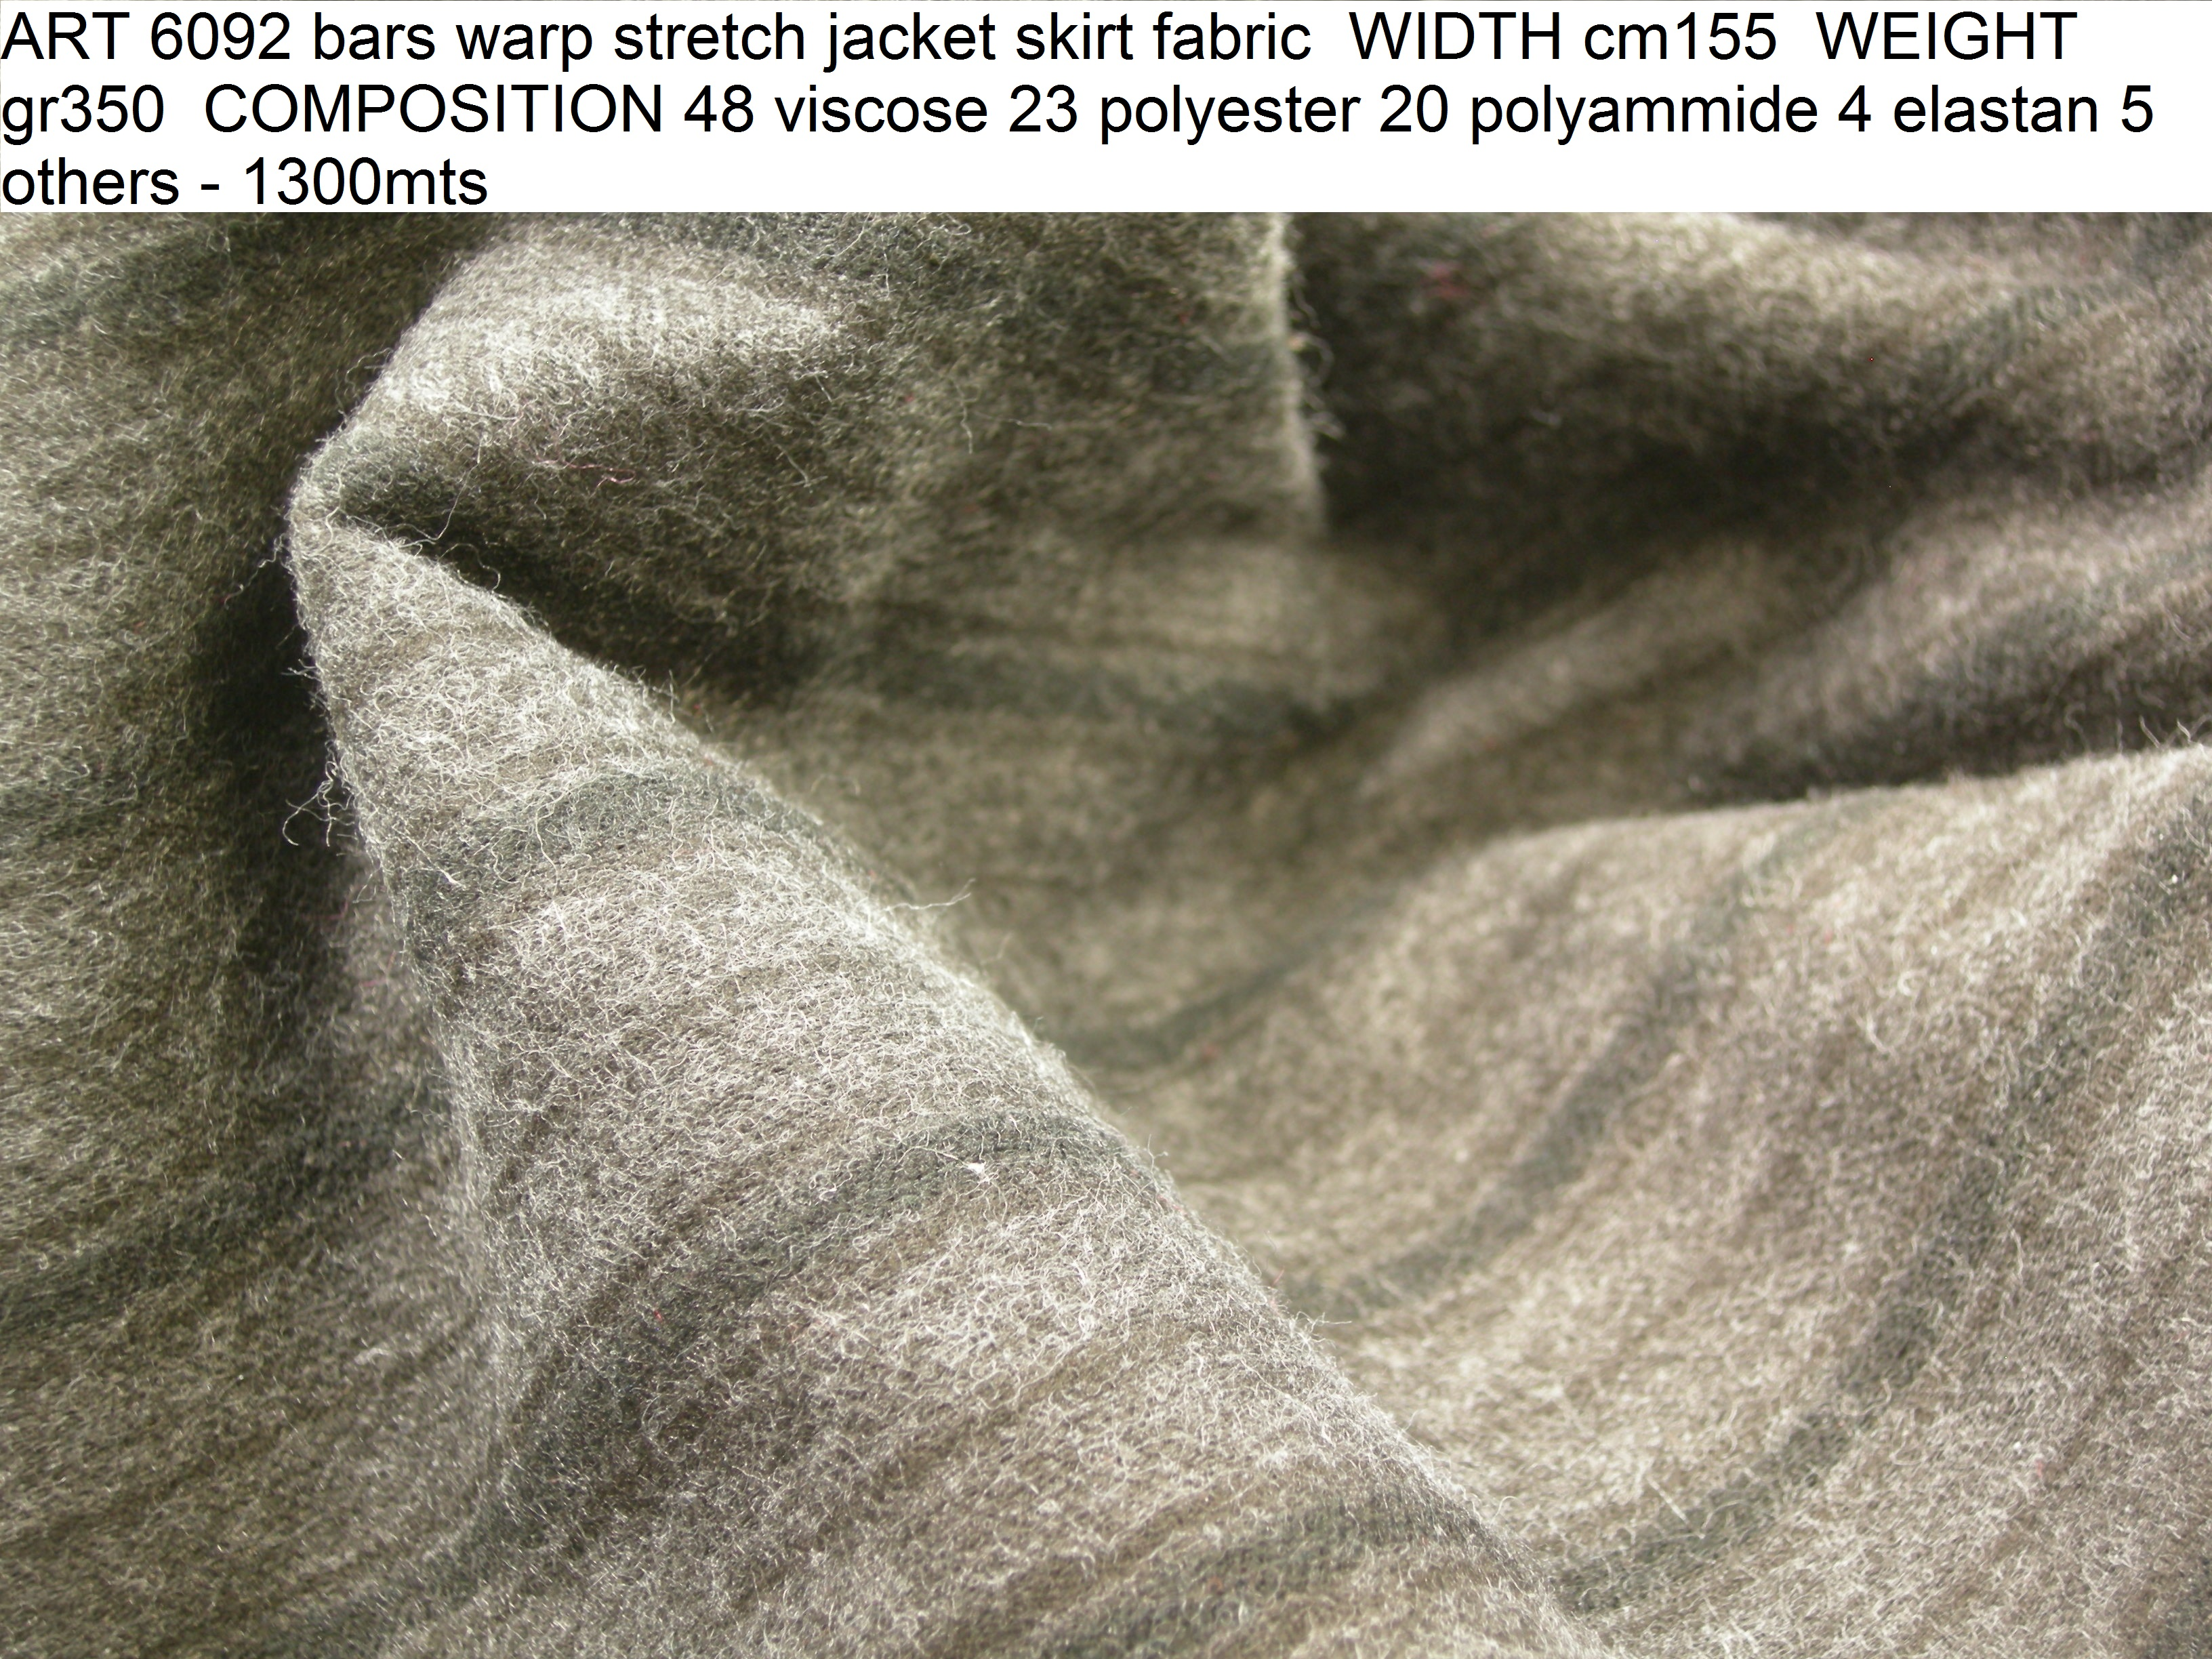 ART 6092 bars warp stretch jacket skirt fabric WIDTH cm155 WEIGHT gr350 COMPOSITION 48 viscose 23 polyester 20 polyammide 4 elastan 5 others - 1300mts